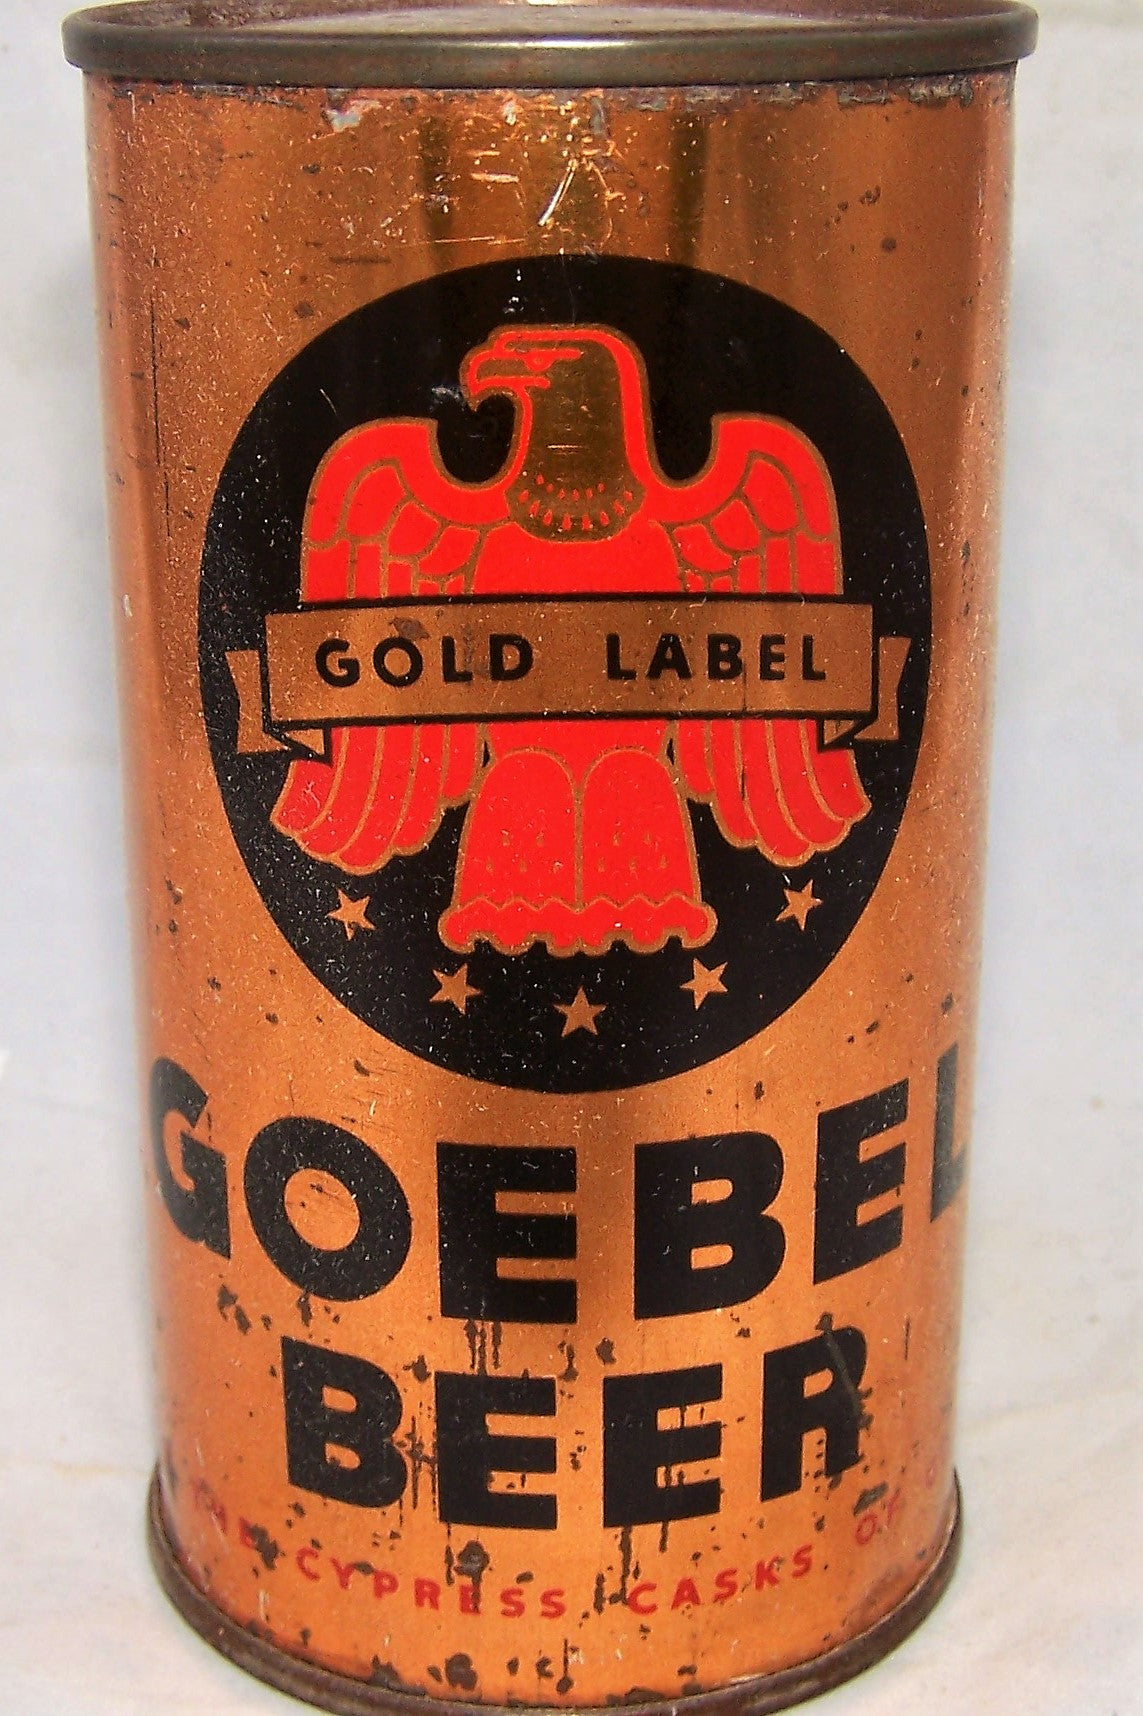 Goebel Gold Label O.I